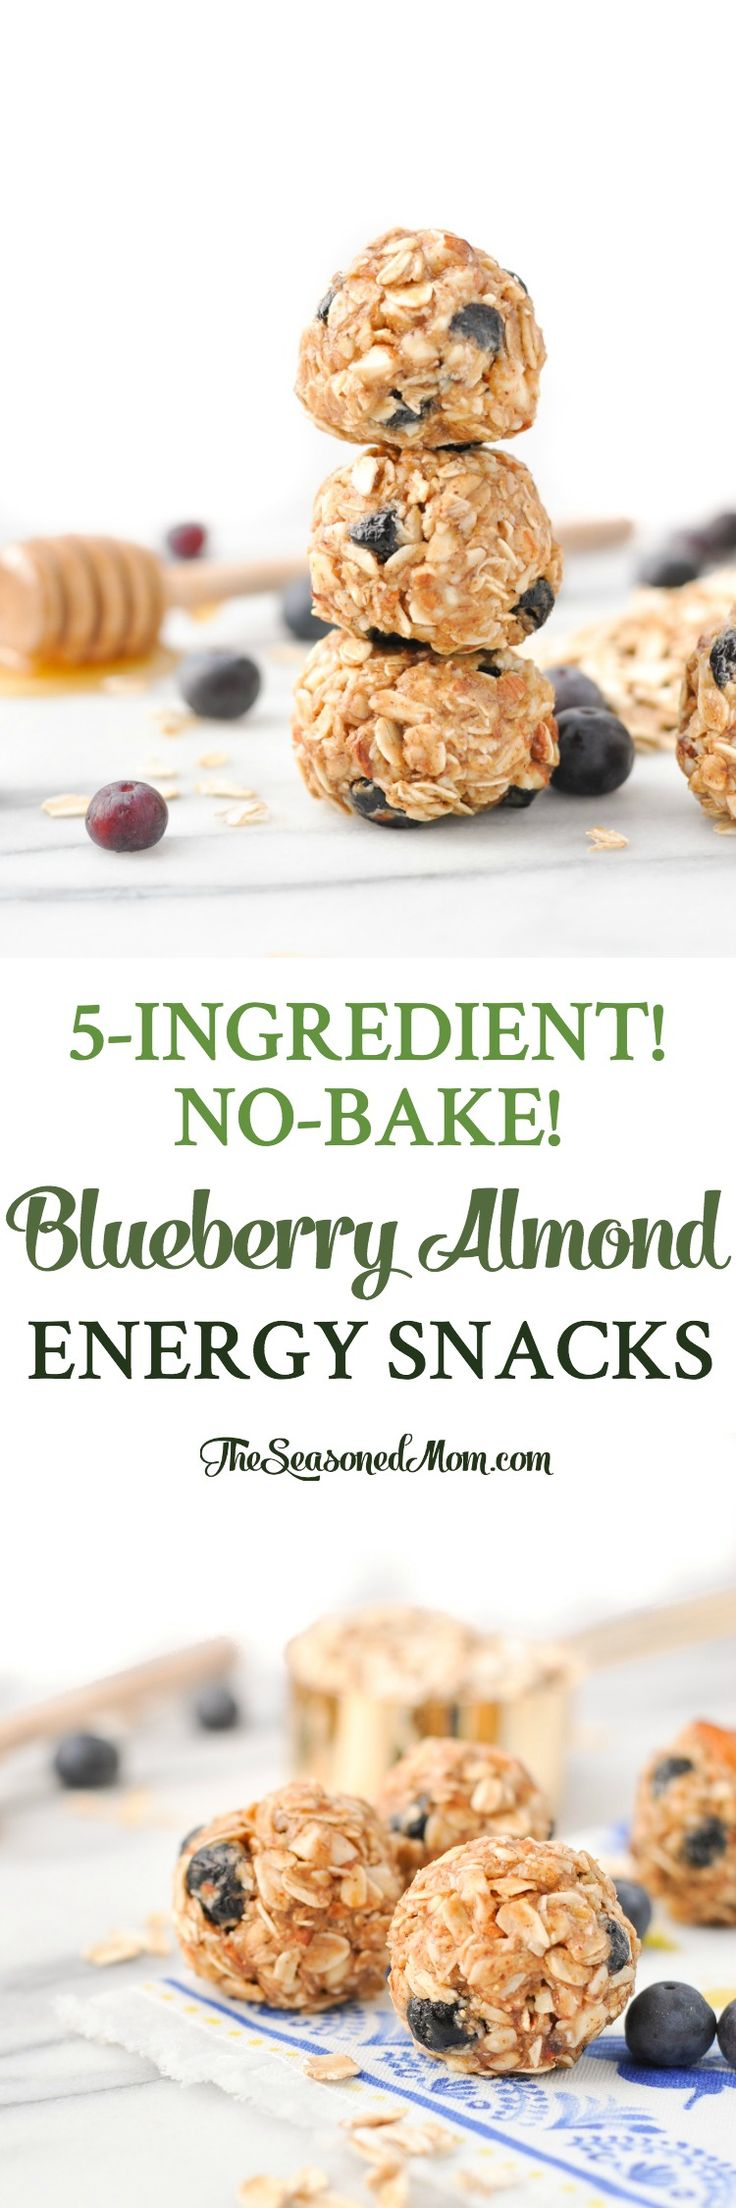 5-Ingredient No-Bake Blueberry Almond Energy Snacks! Snacks for Kids | Healthy Snacks | Snack Ideas | No Bake Energy Bites | Clean Eating Recipes | Meal Prep | Gluten Free